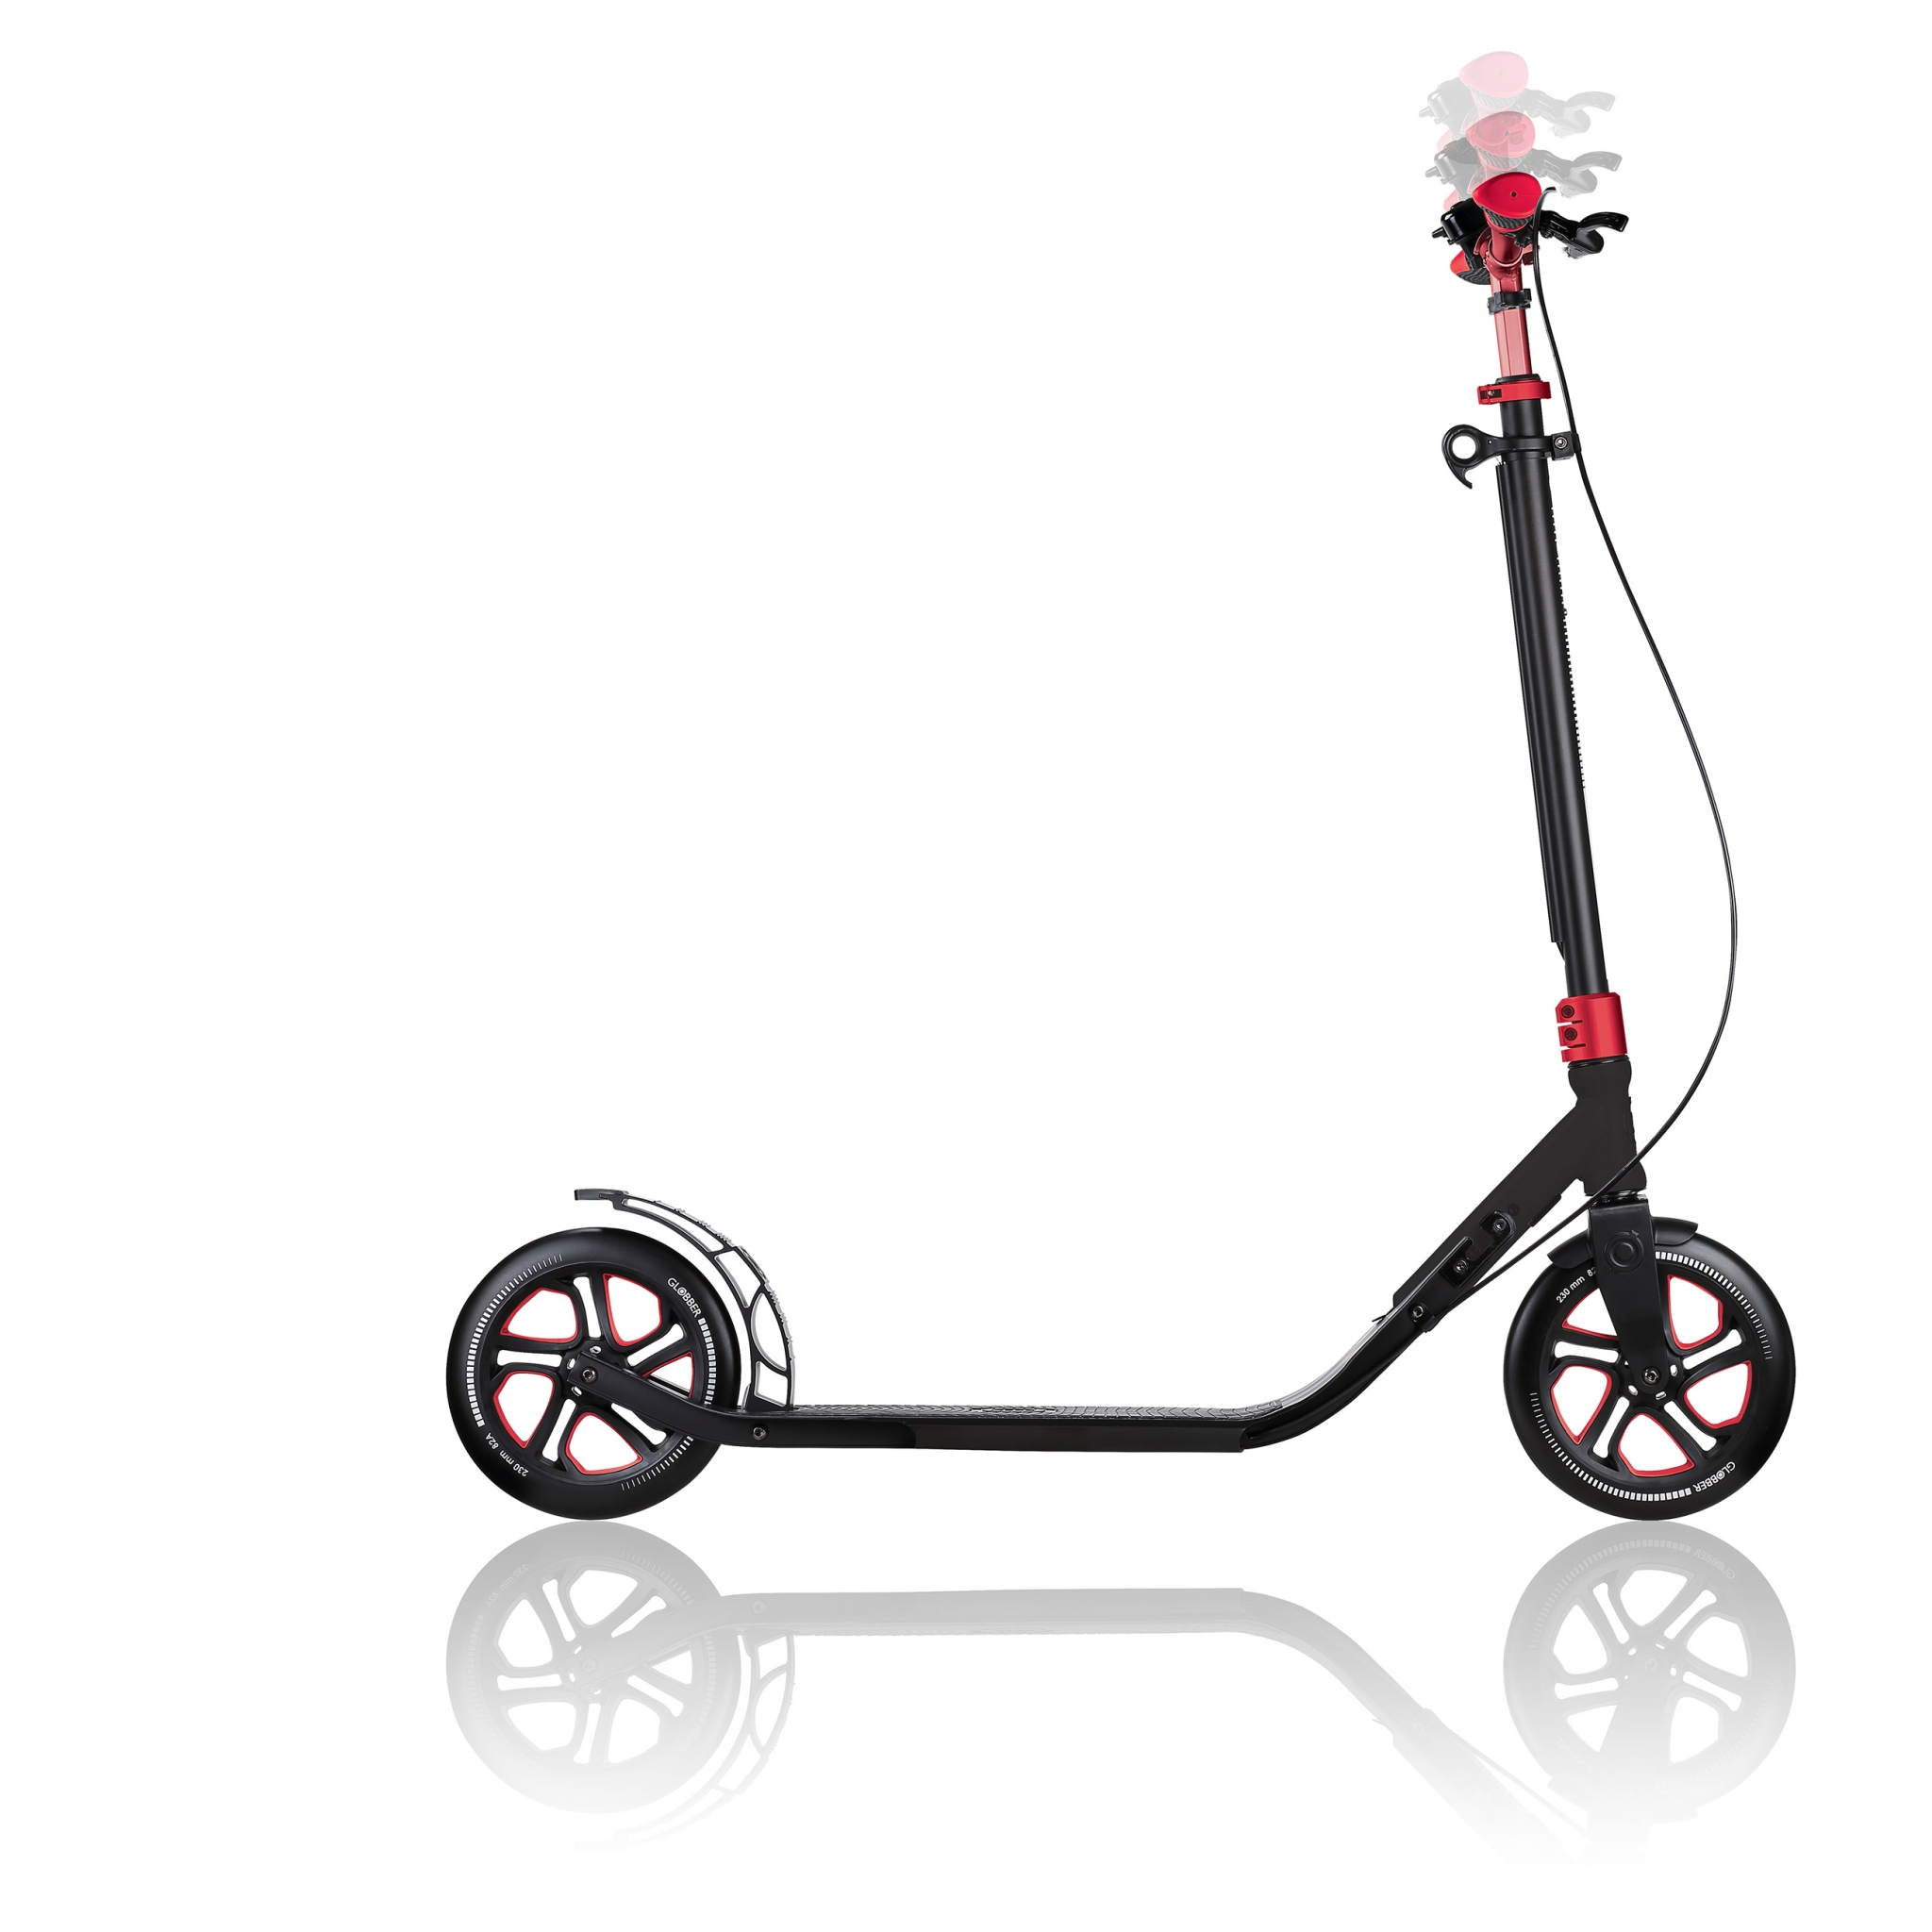 big wheel kick scooter - Globber ONE NL 230 ULTIMATE 4